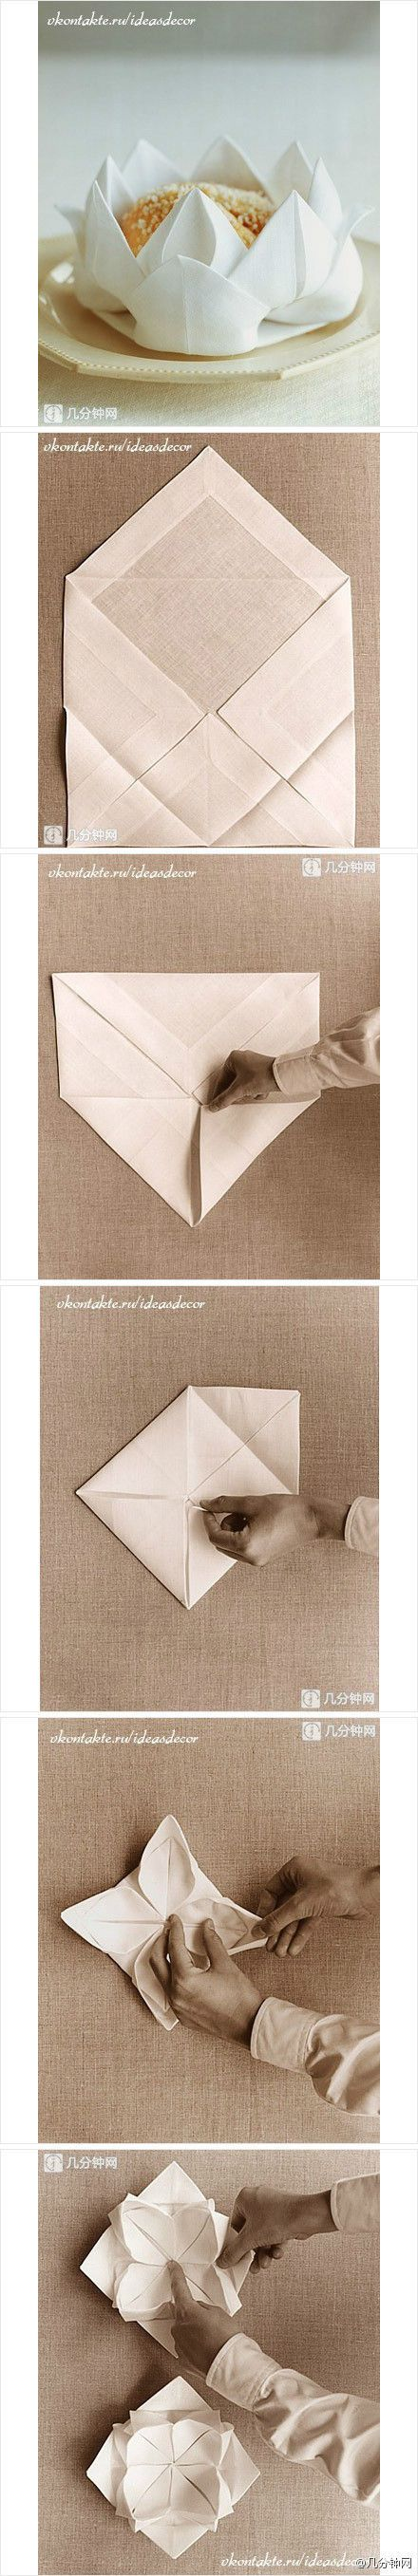 Diy Napkin Water Lily Diy Projects Usefuldiy On Imgfave